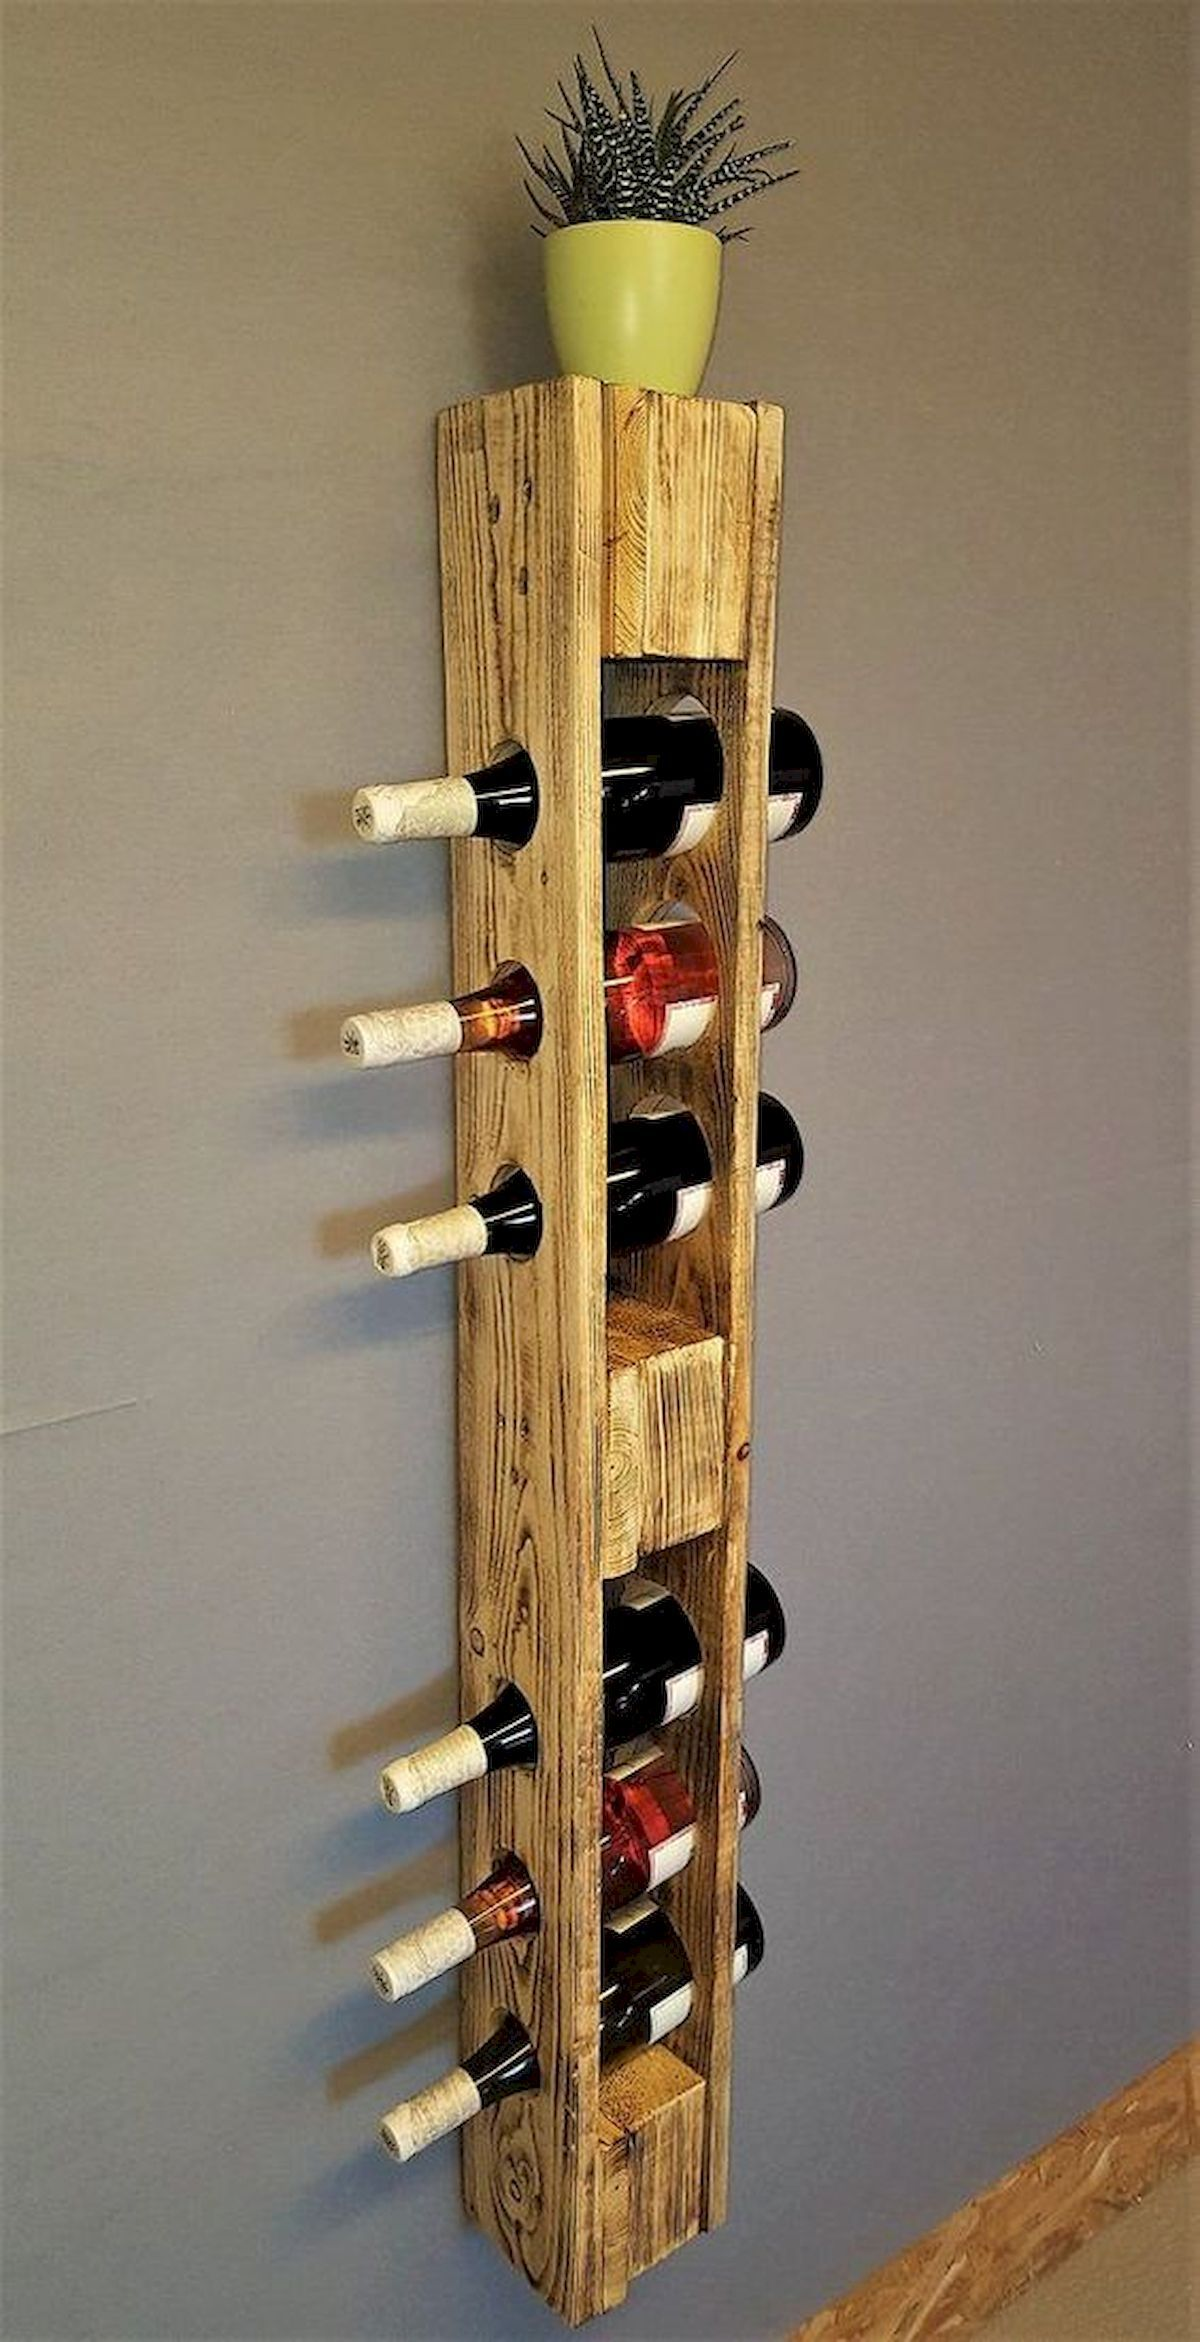 33 Ideas For DIY Pallet Racks33DECOR